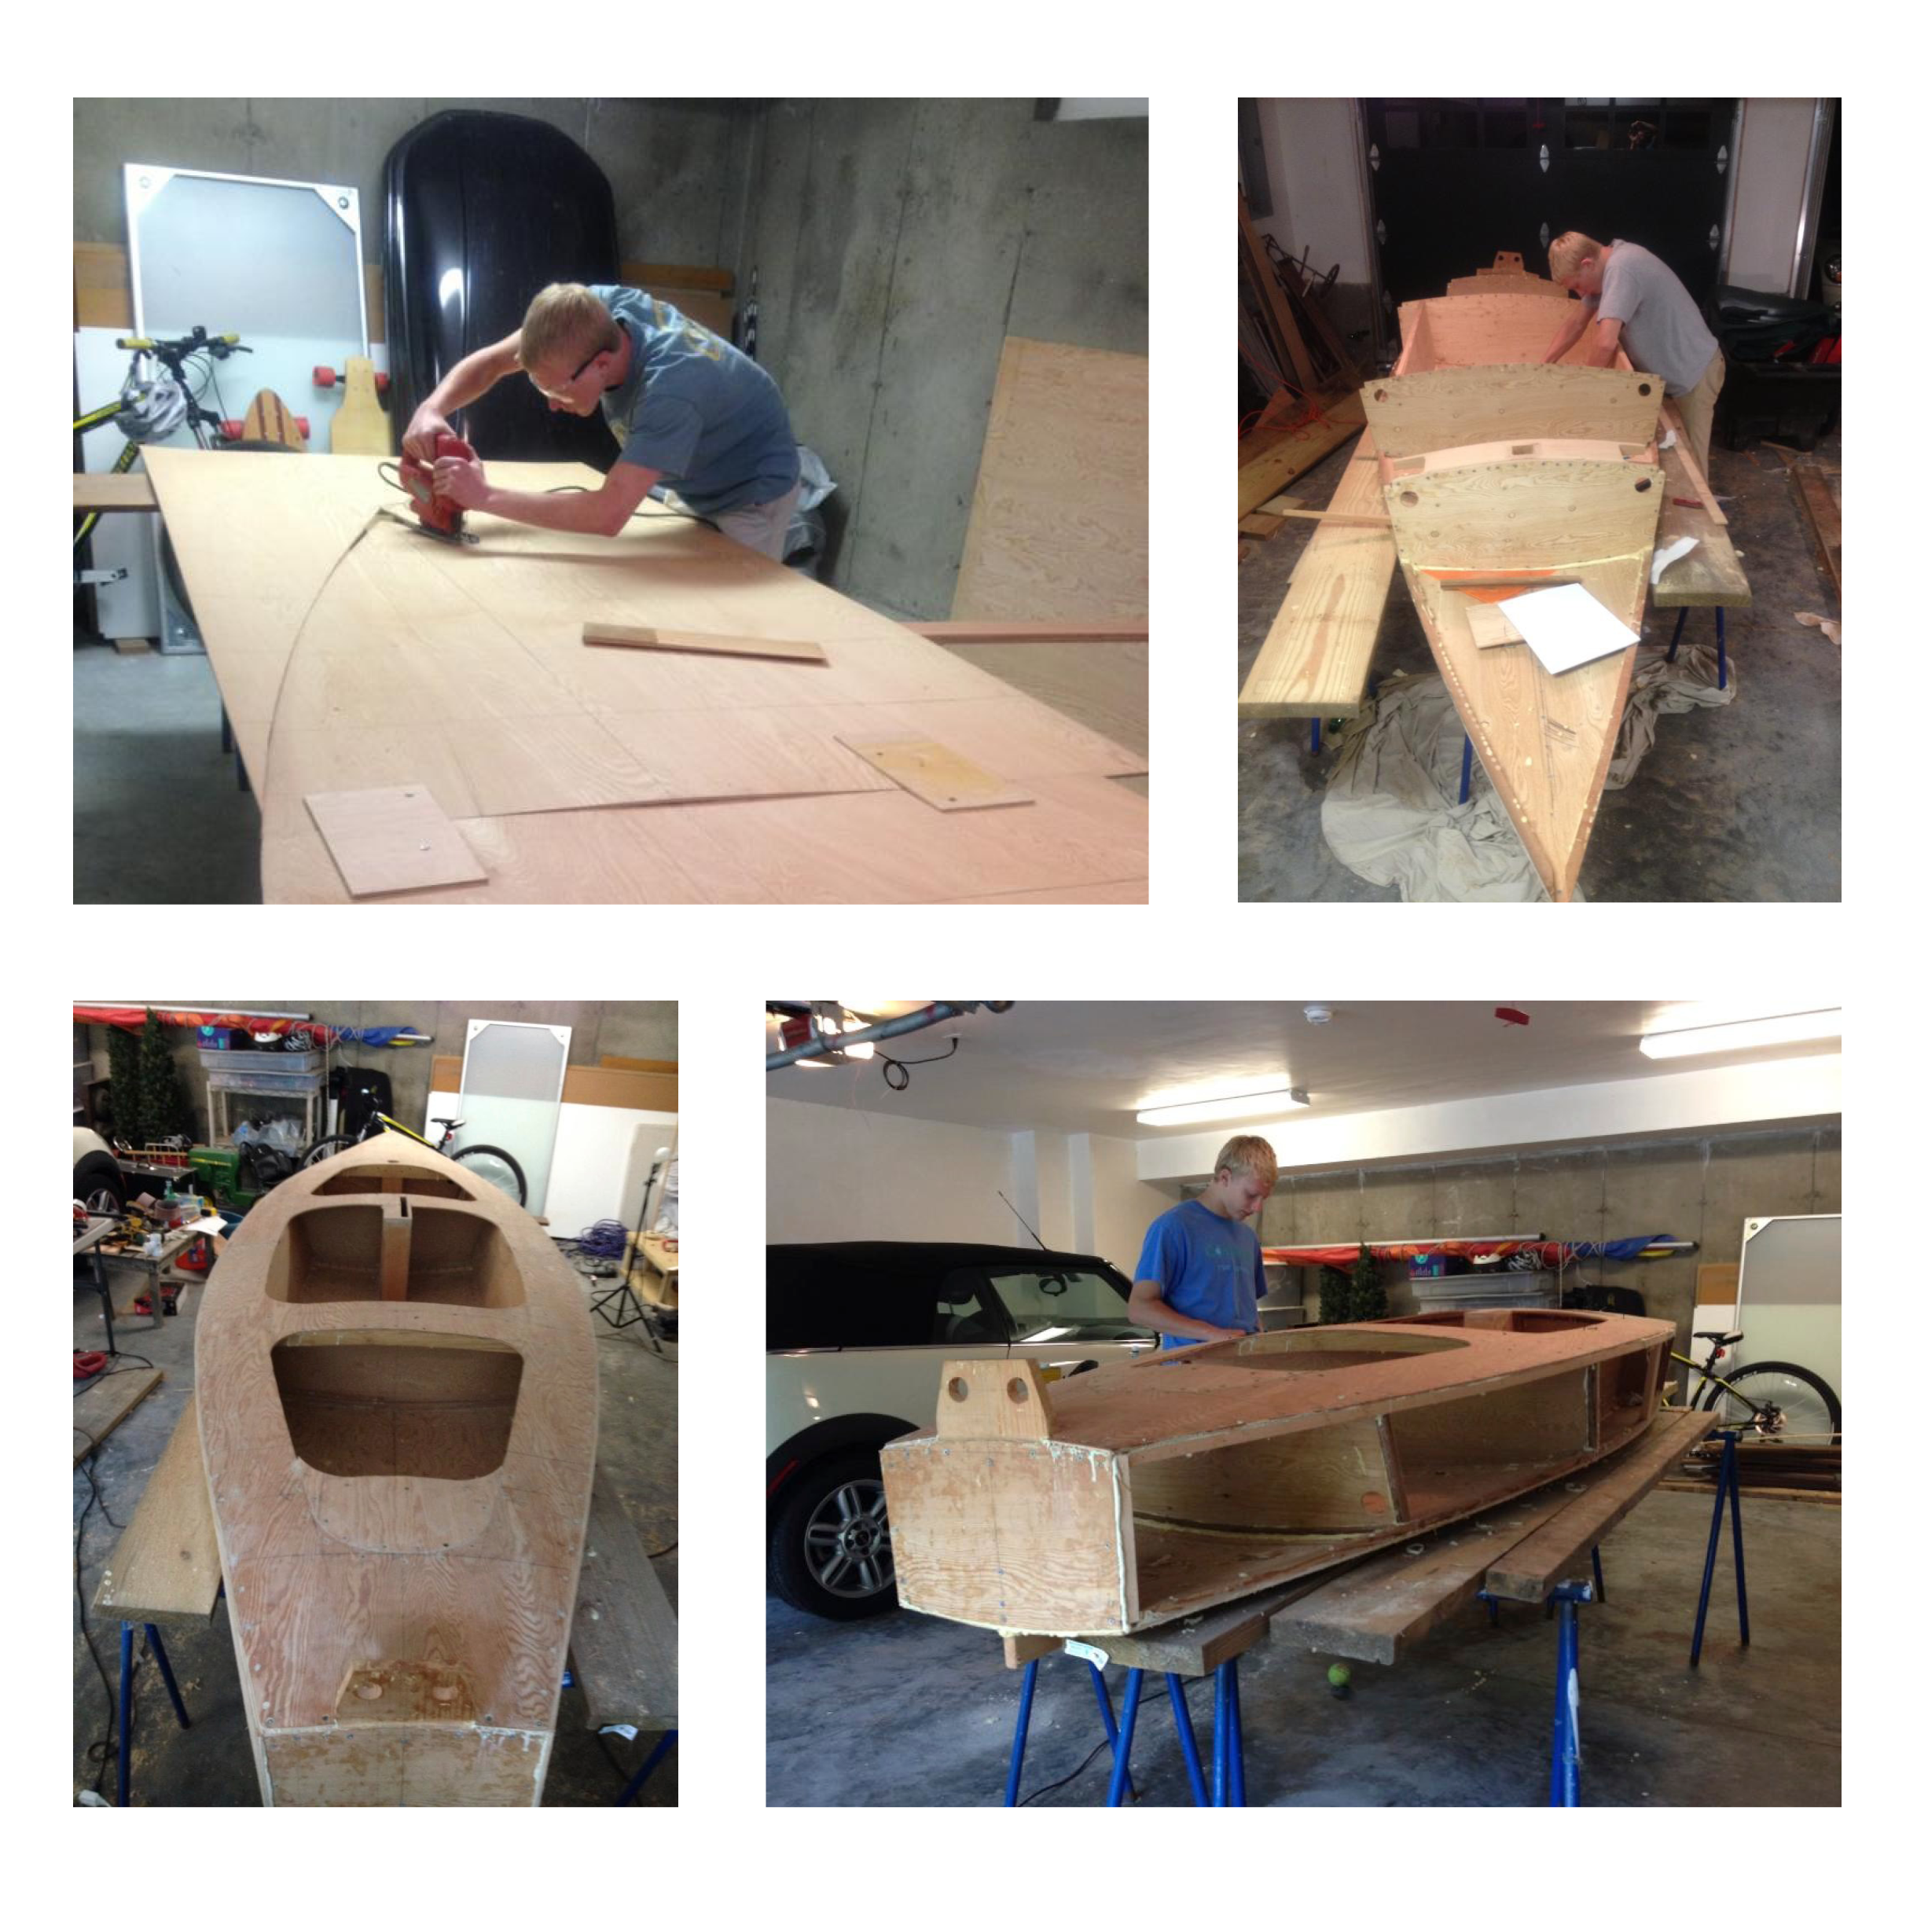 Construction - Through the process of building this boat from scratch, I learned about bridging the gap between an idea, which can have vagueness, and a concrete physical object, in which every detail must be carfeully considered and executed.